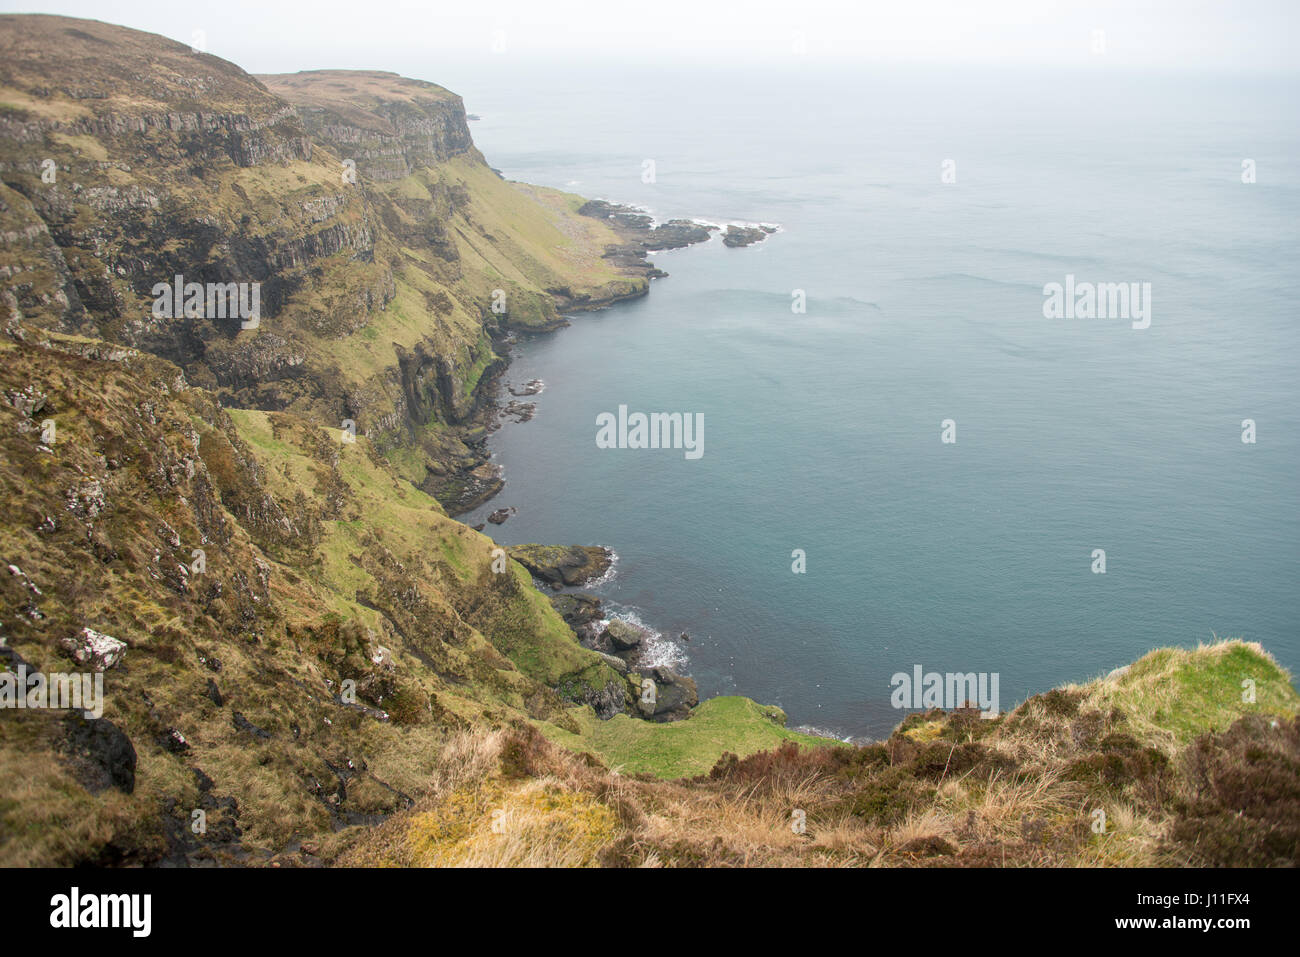 Cliffs on the north coast of the Island of Canna, inner hebrides, Scotland. - Stock Image